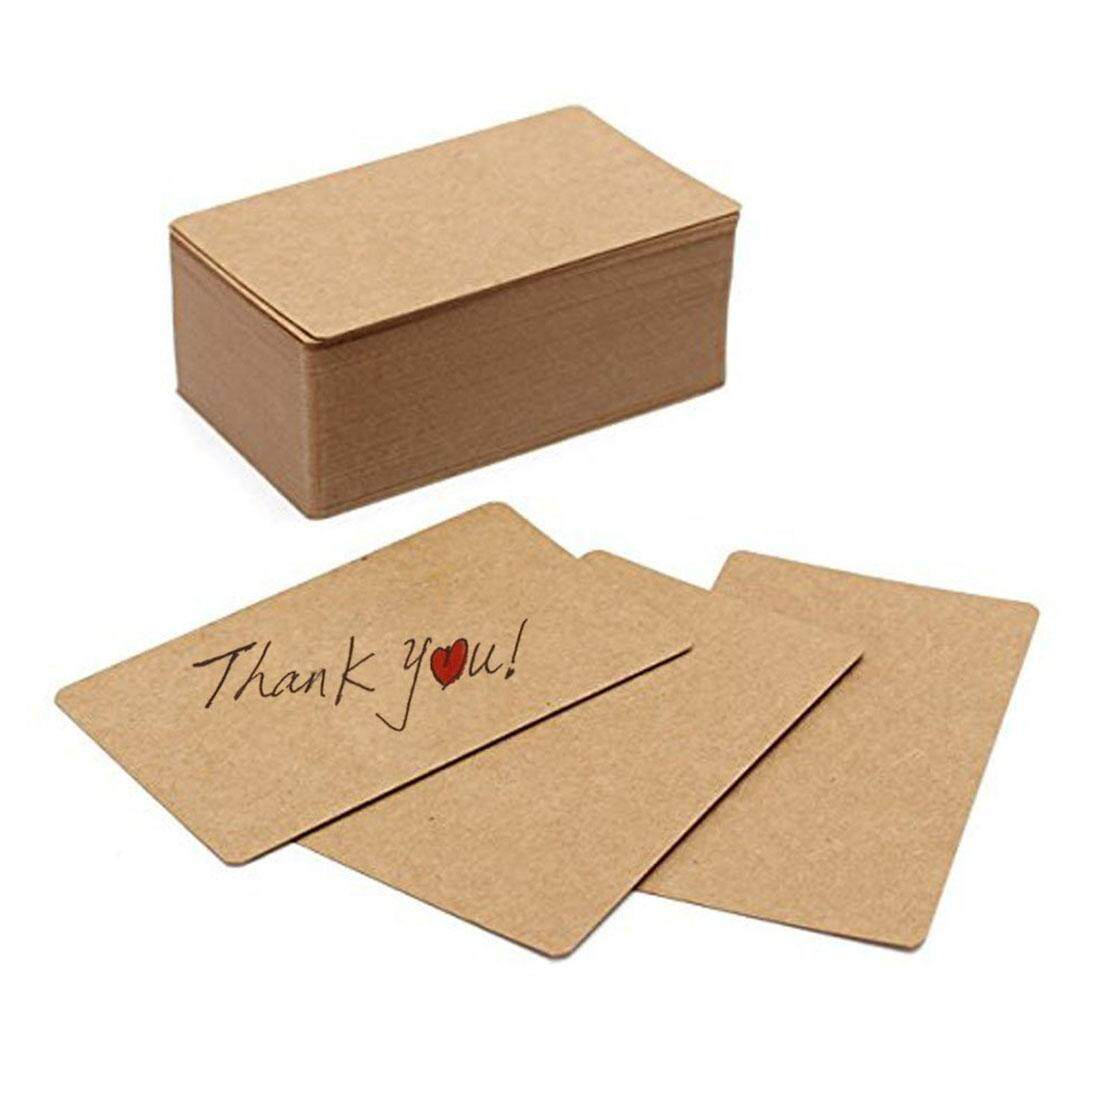 fee857a5493 100pcs Blank Kraft paper Business Cards Word Card Message Card DIY Gift Card  - intl